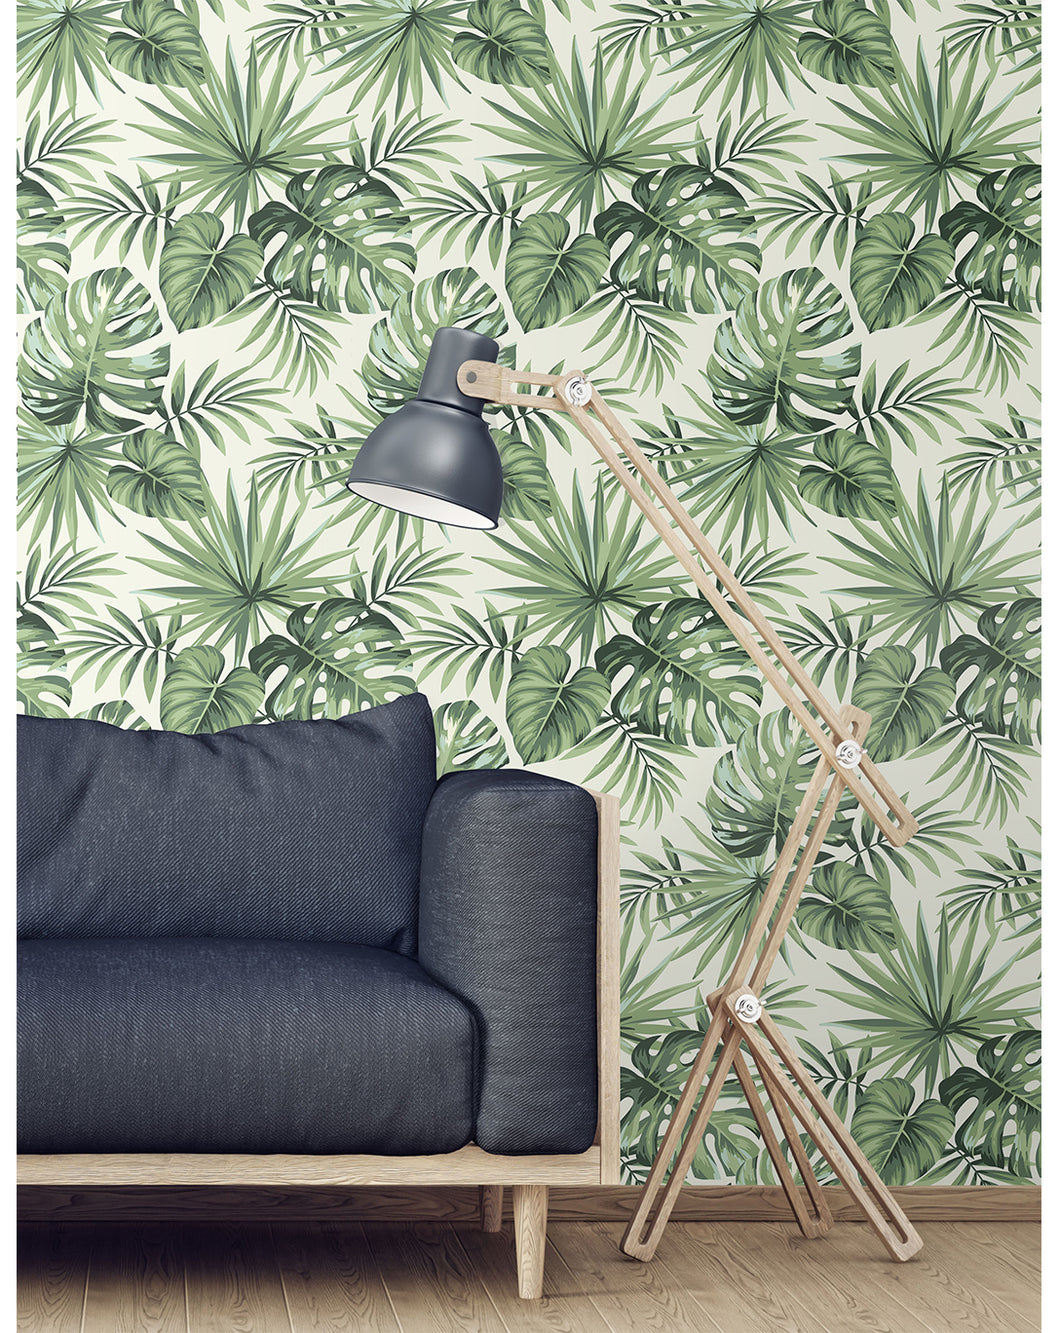 Tropical Wallpaper With Exotic Palm Leaves Illustration Removable Self Adhesive Wall Mural Peel And Stick Repositionable